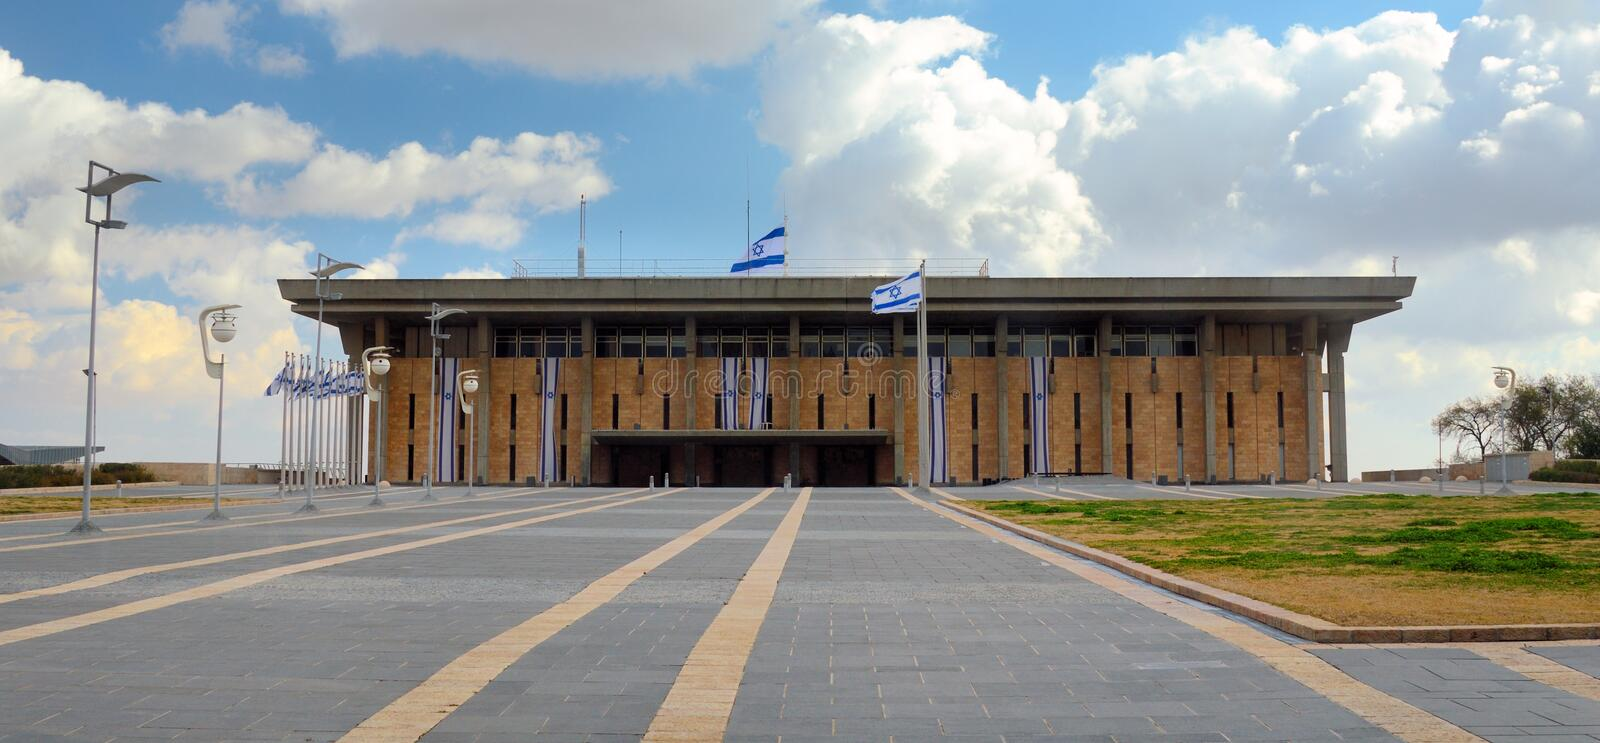 Israeli Parliament Building. The Knesset in Jerusalem, Israel. First convened in 1949, The Knesset passes all laws, elects the President and Prime Minister and